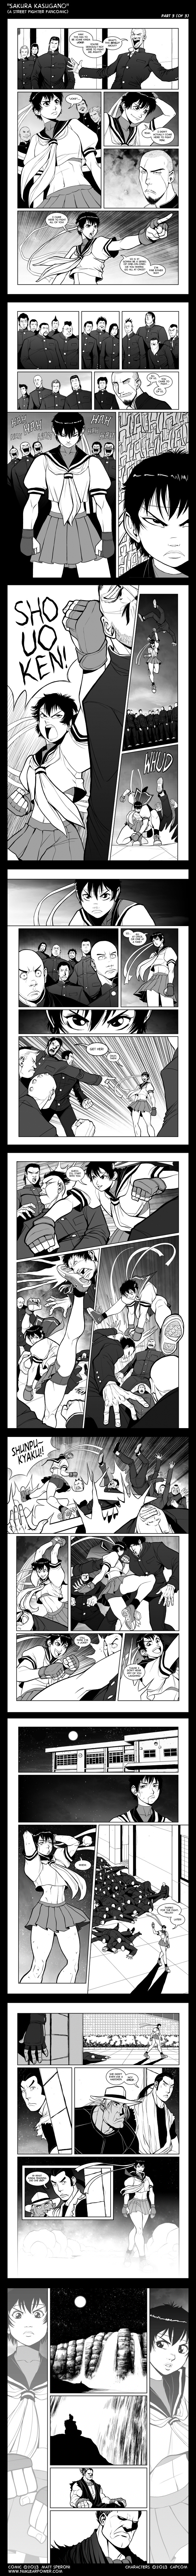 Street Fighter Fancomic – 3 of 3